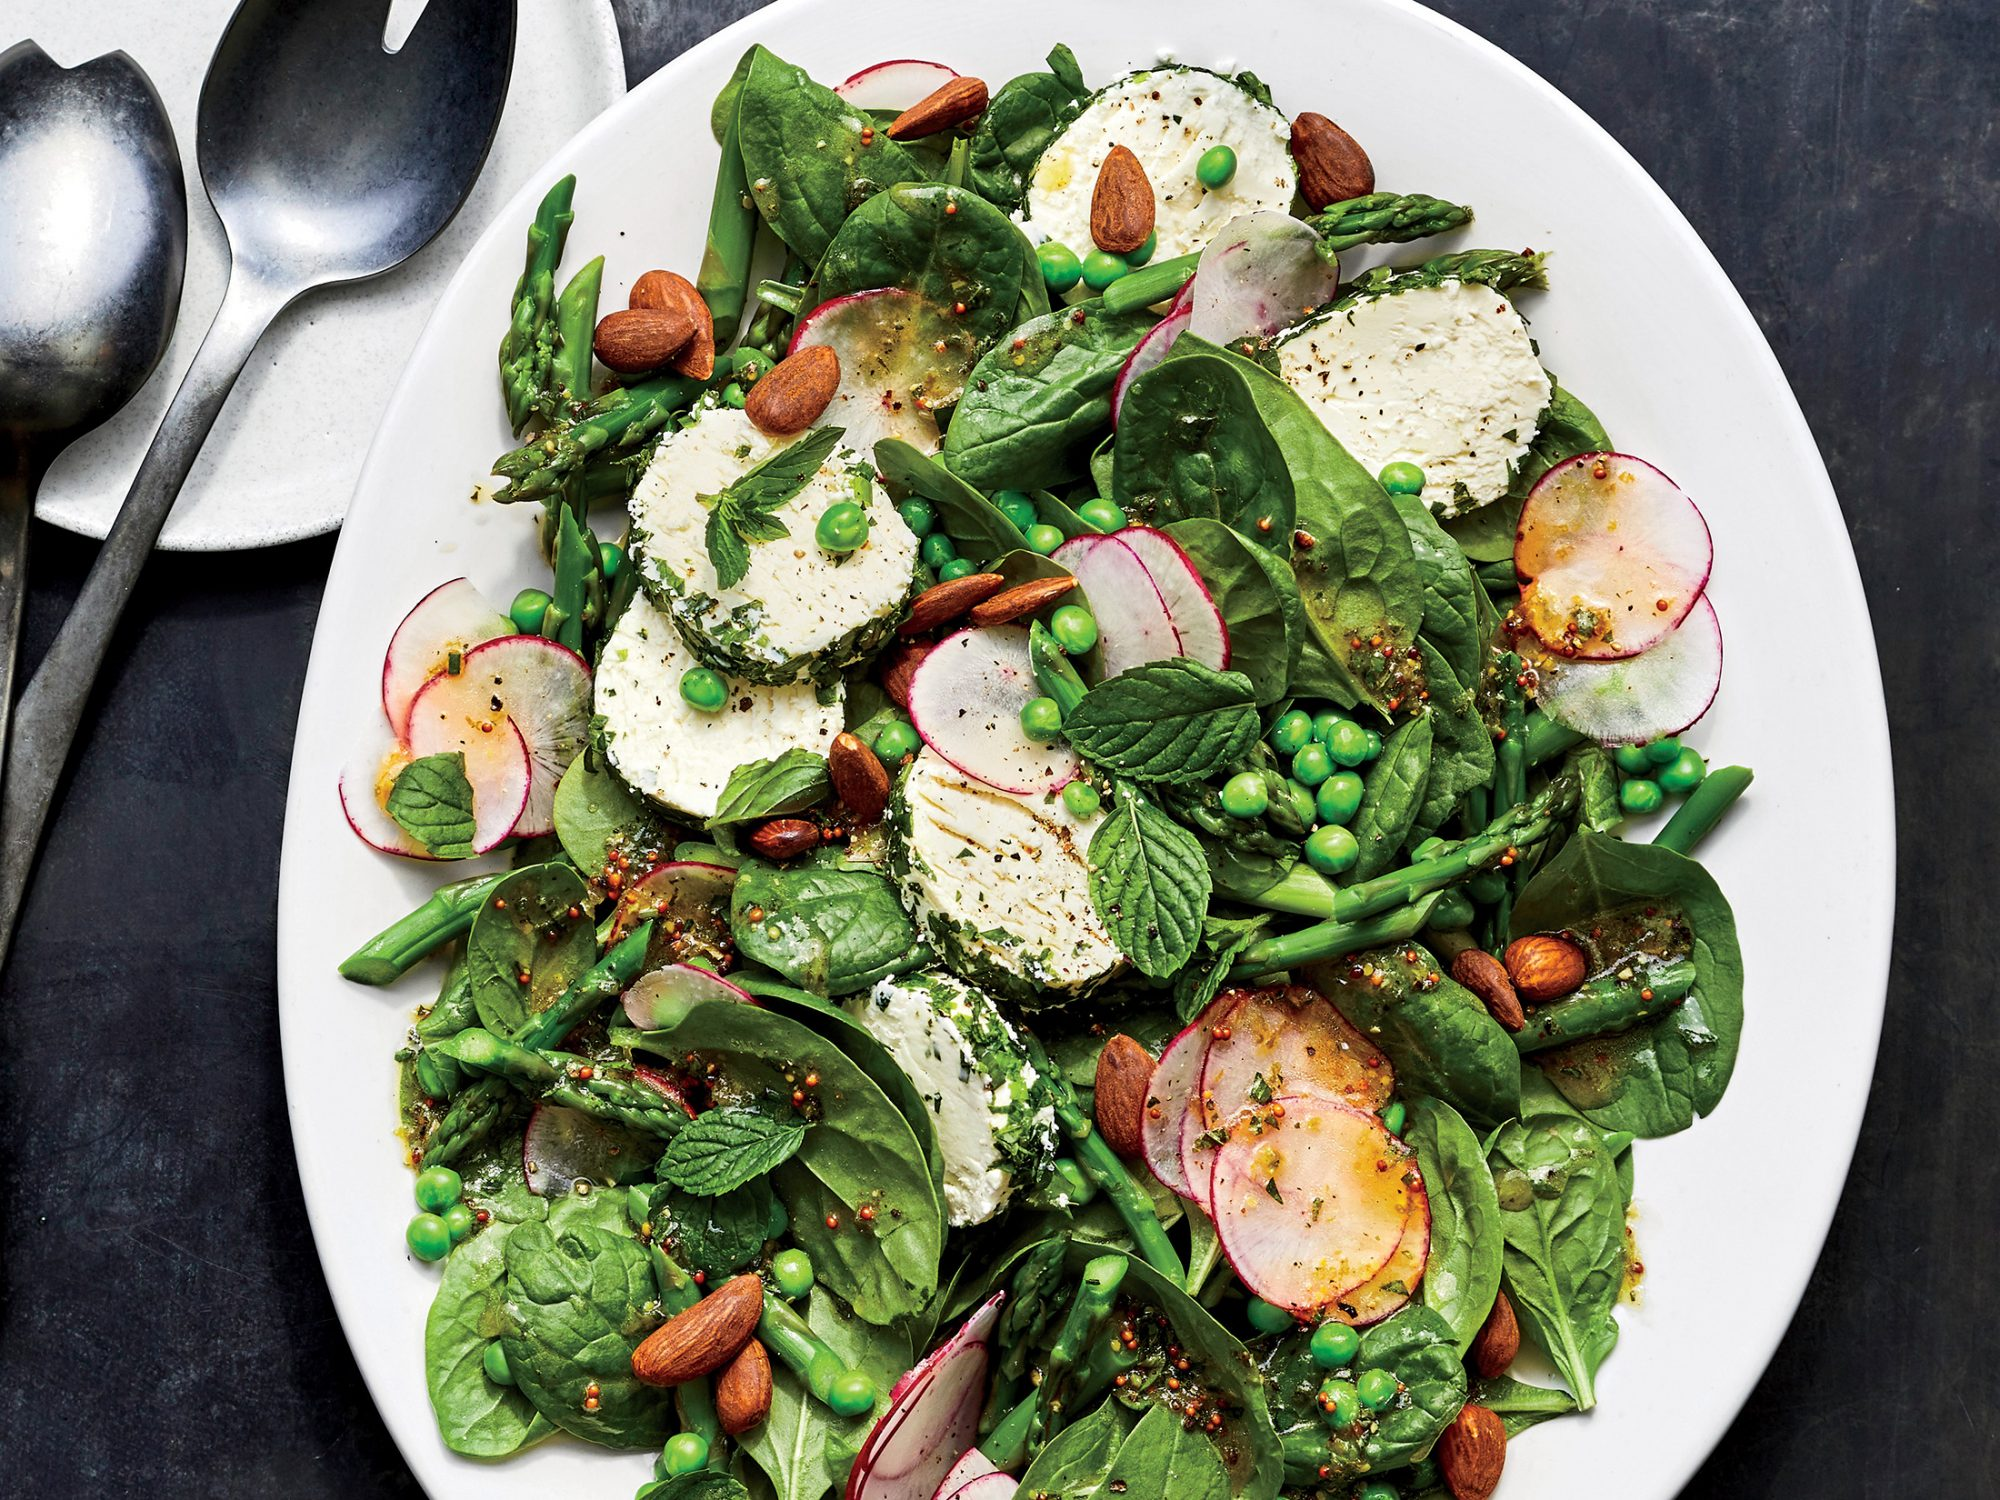 Spring Salad with Herbed Goat Cheese